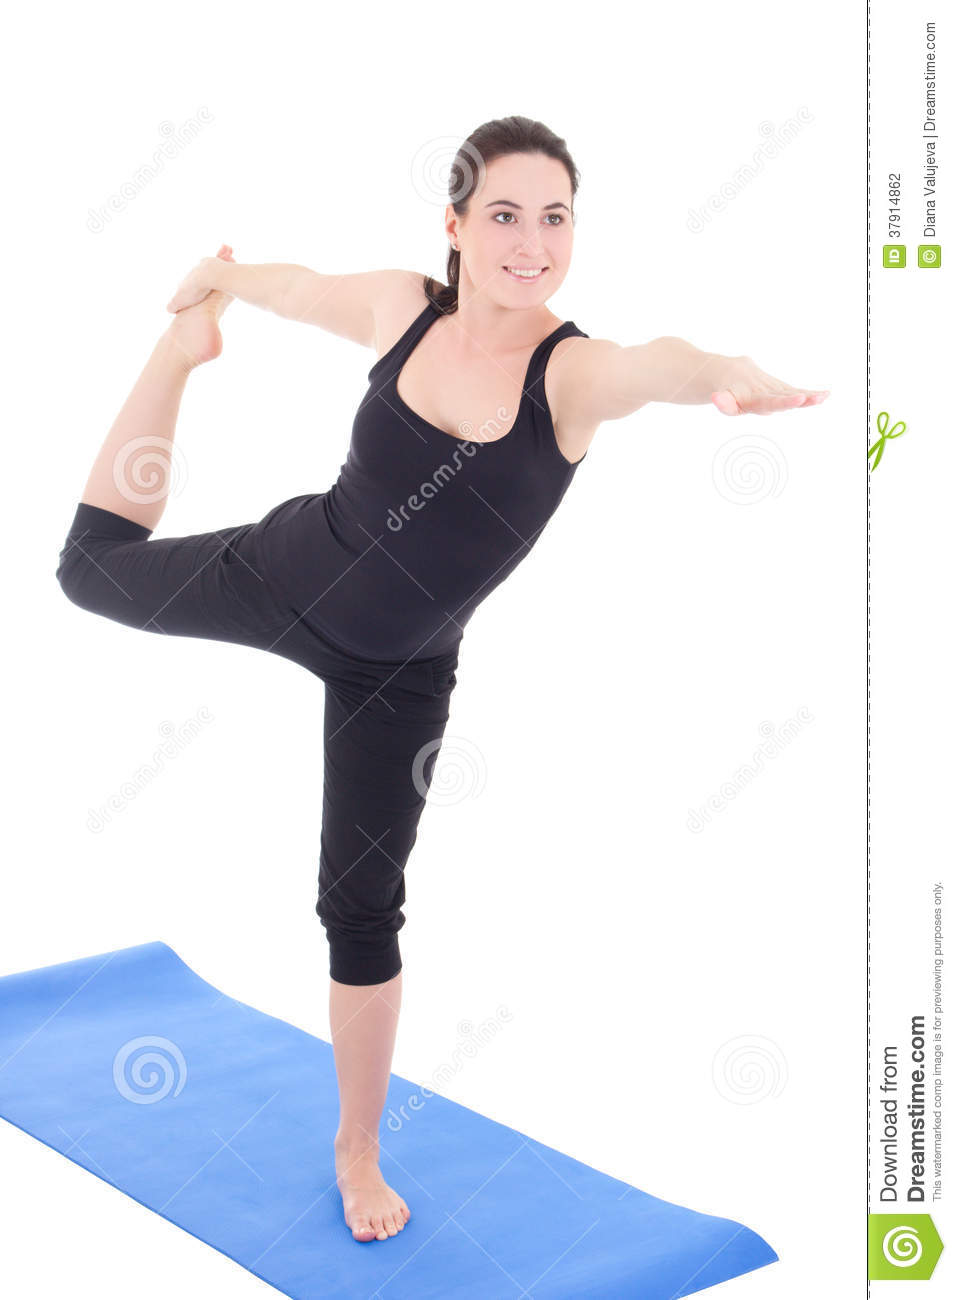 Young Woman Standing In Yoga Pose On Rubber Mat Isolated